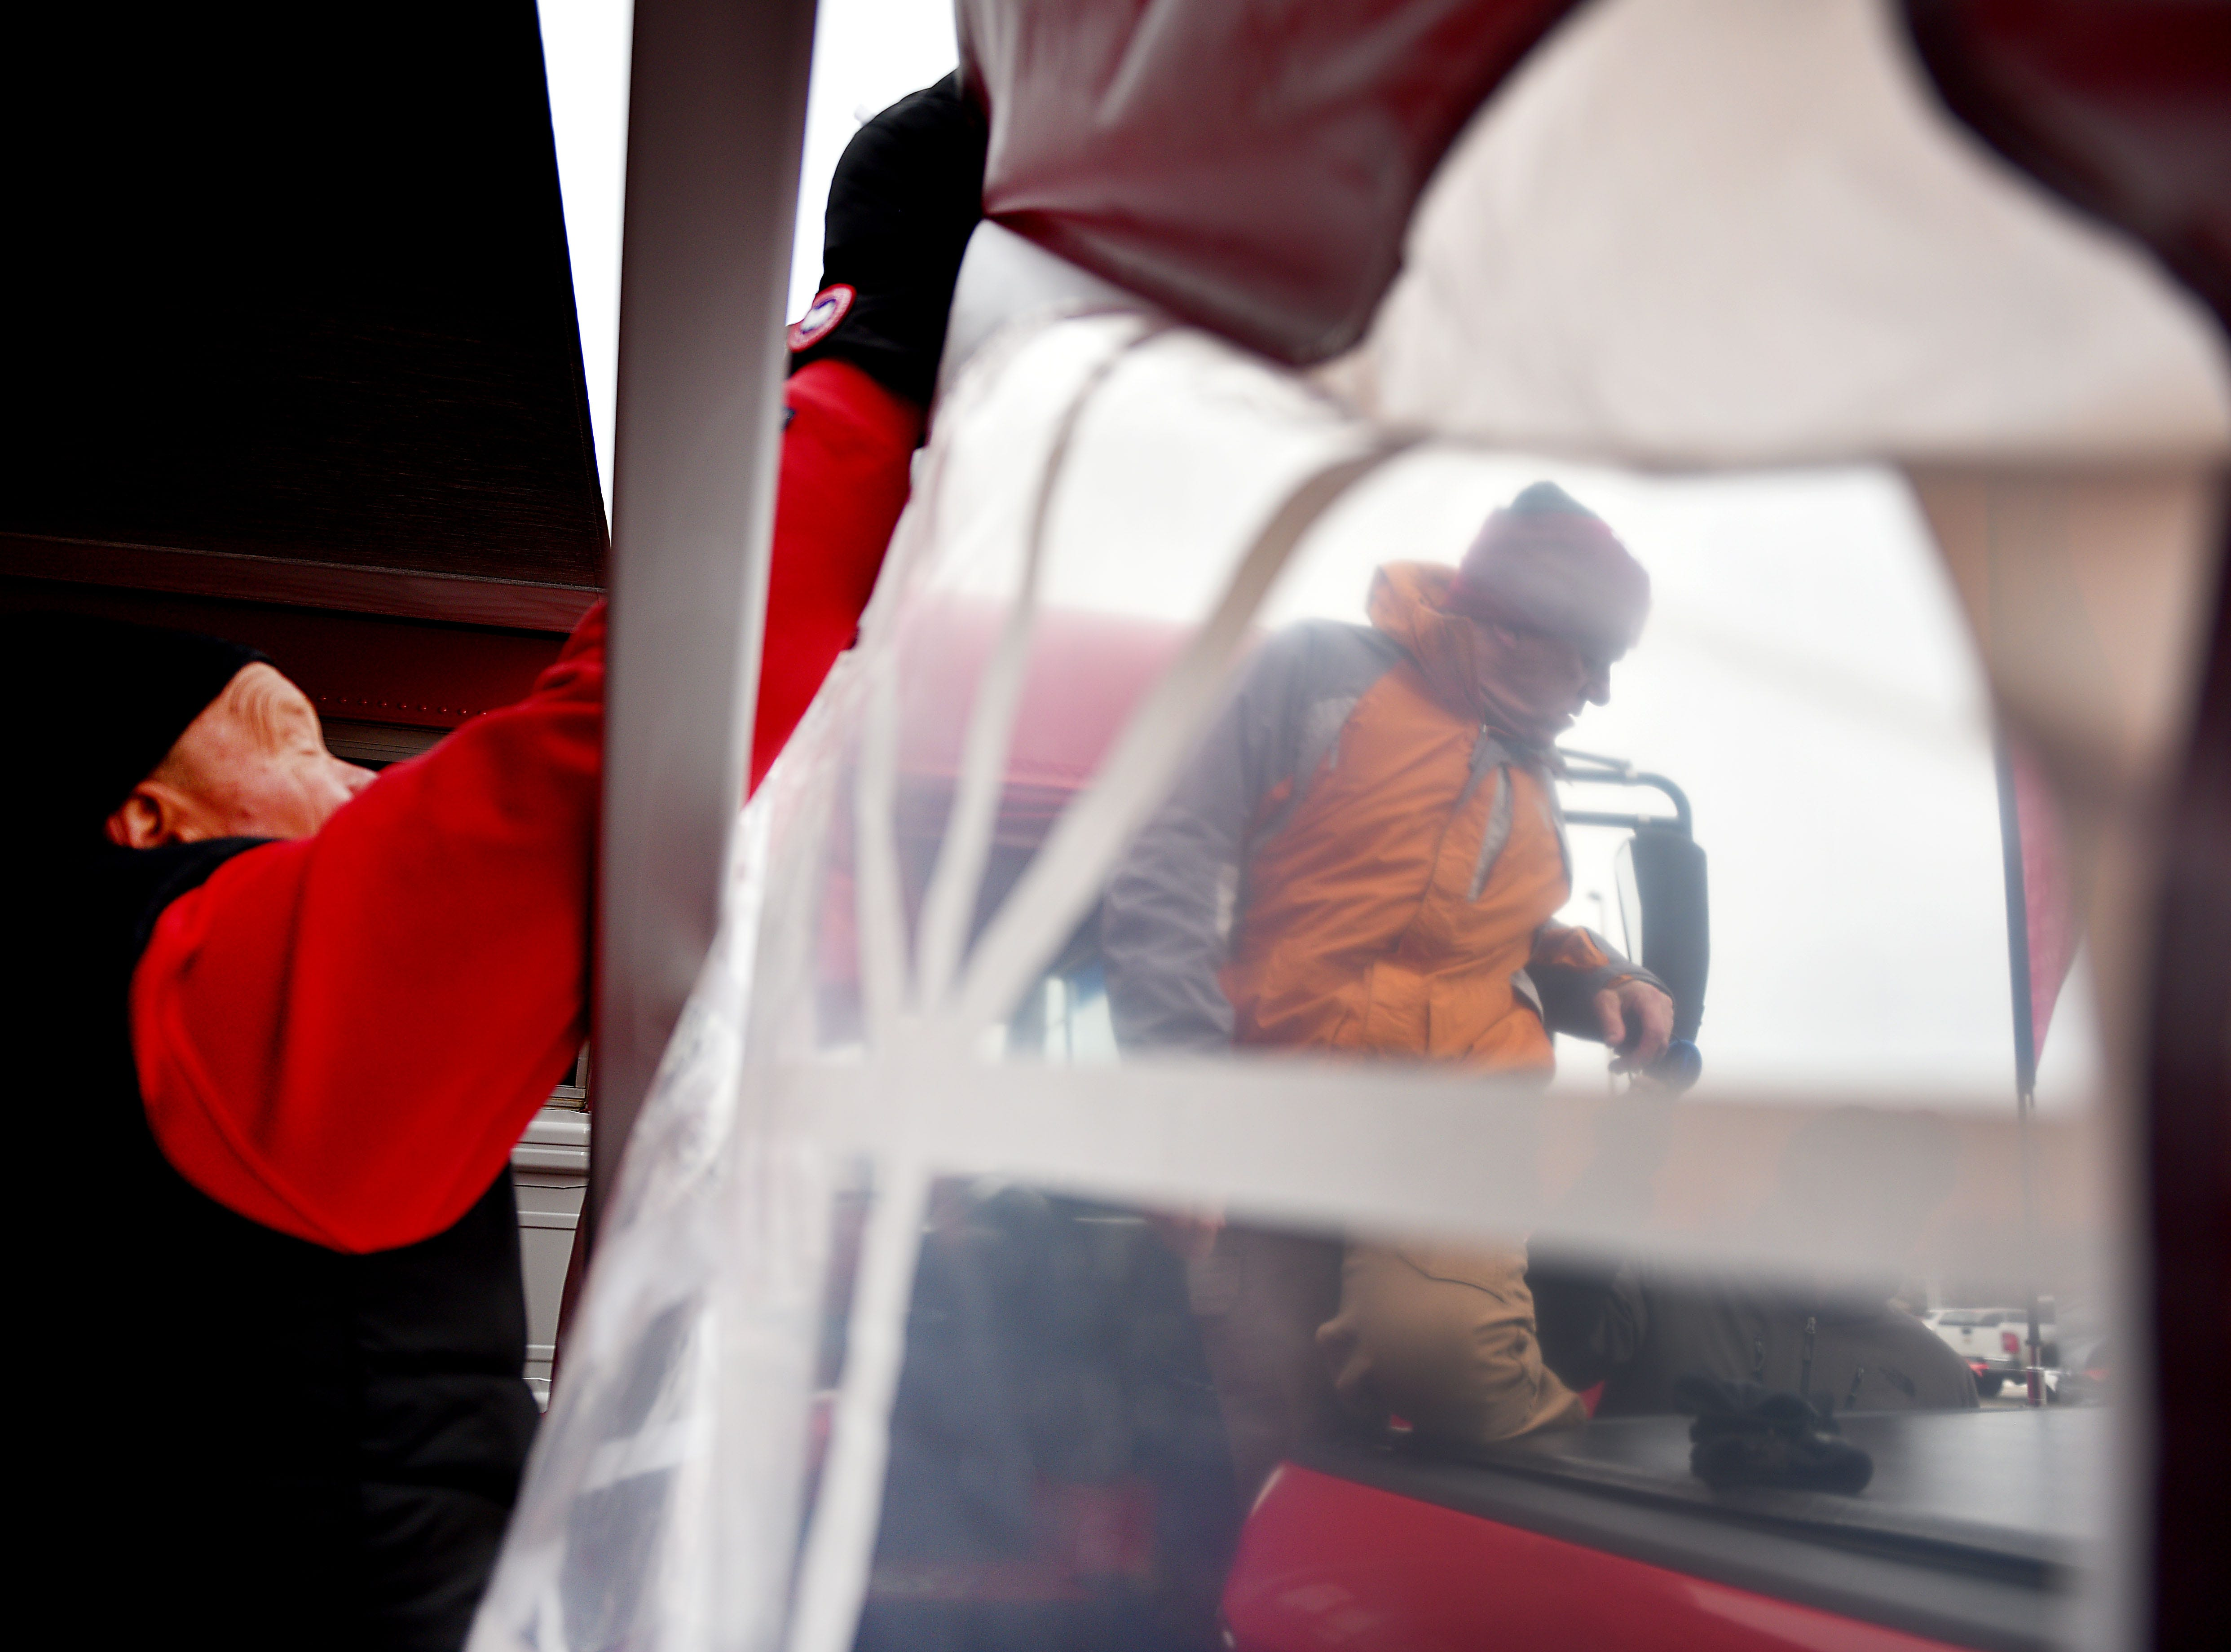 USD fan Dave Hultgren, left, and Dave Zimbeck set up a tent around a tailgate before the game against Western Illinois Saturday, Nov. 10, at the DakotaDome in Vermillion.